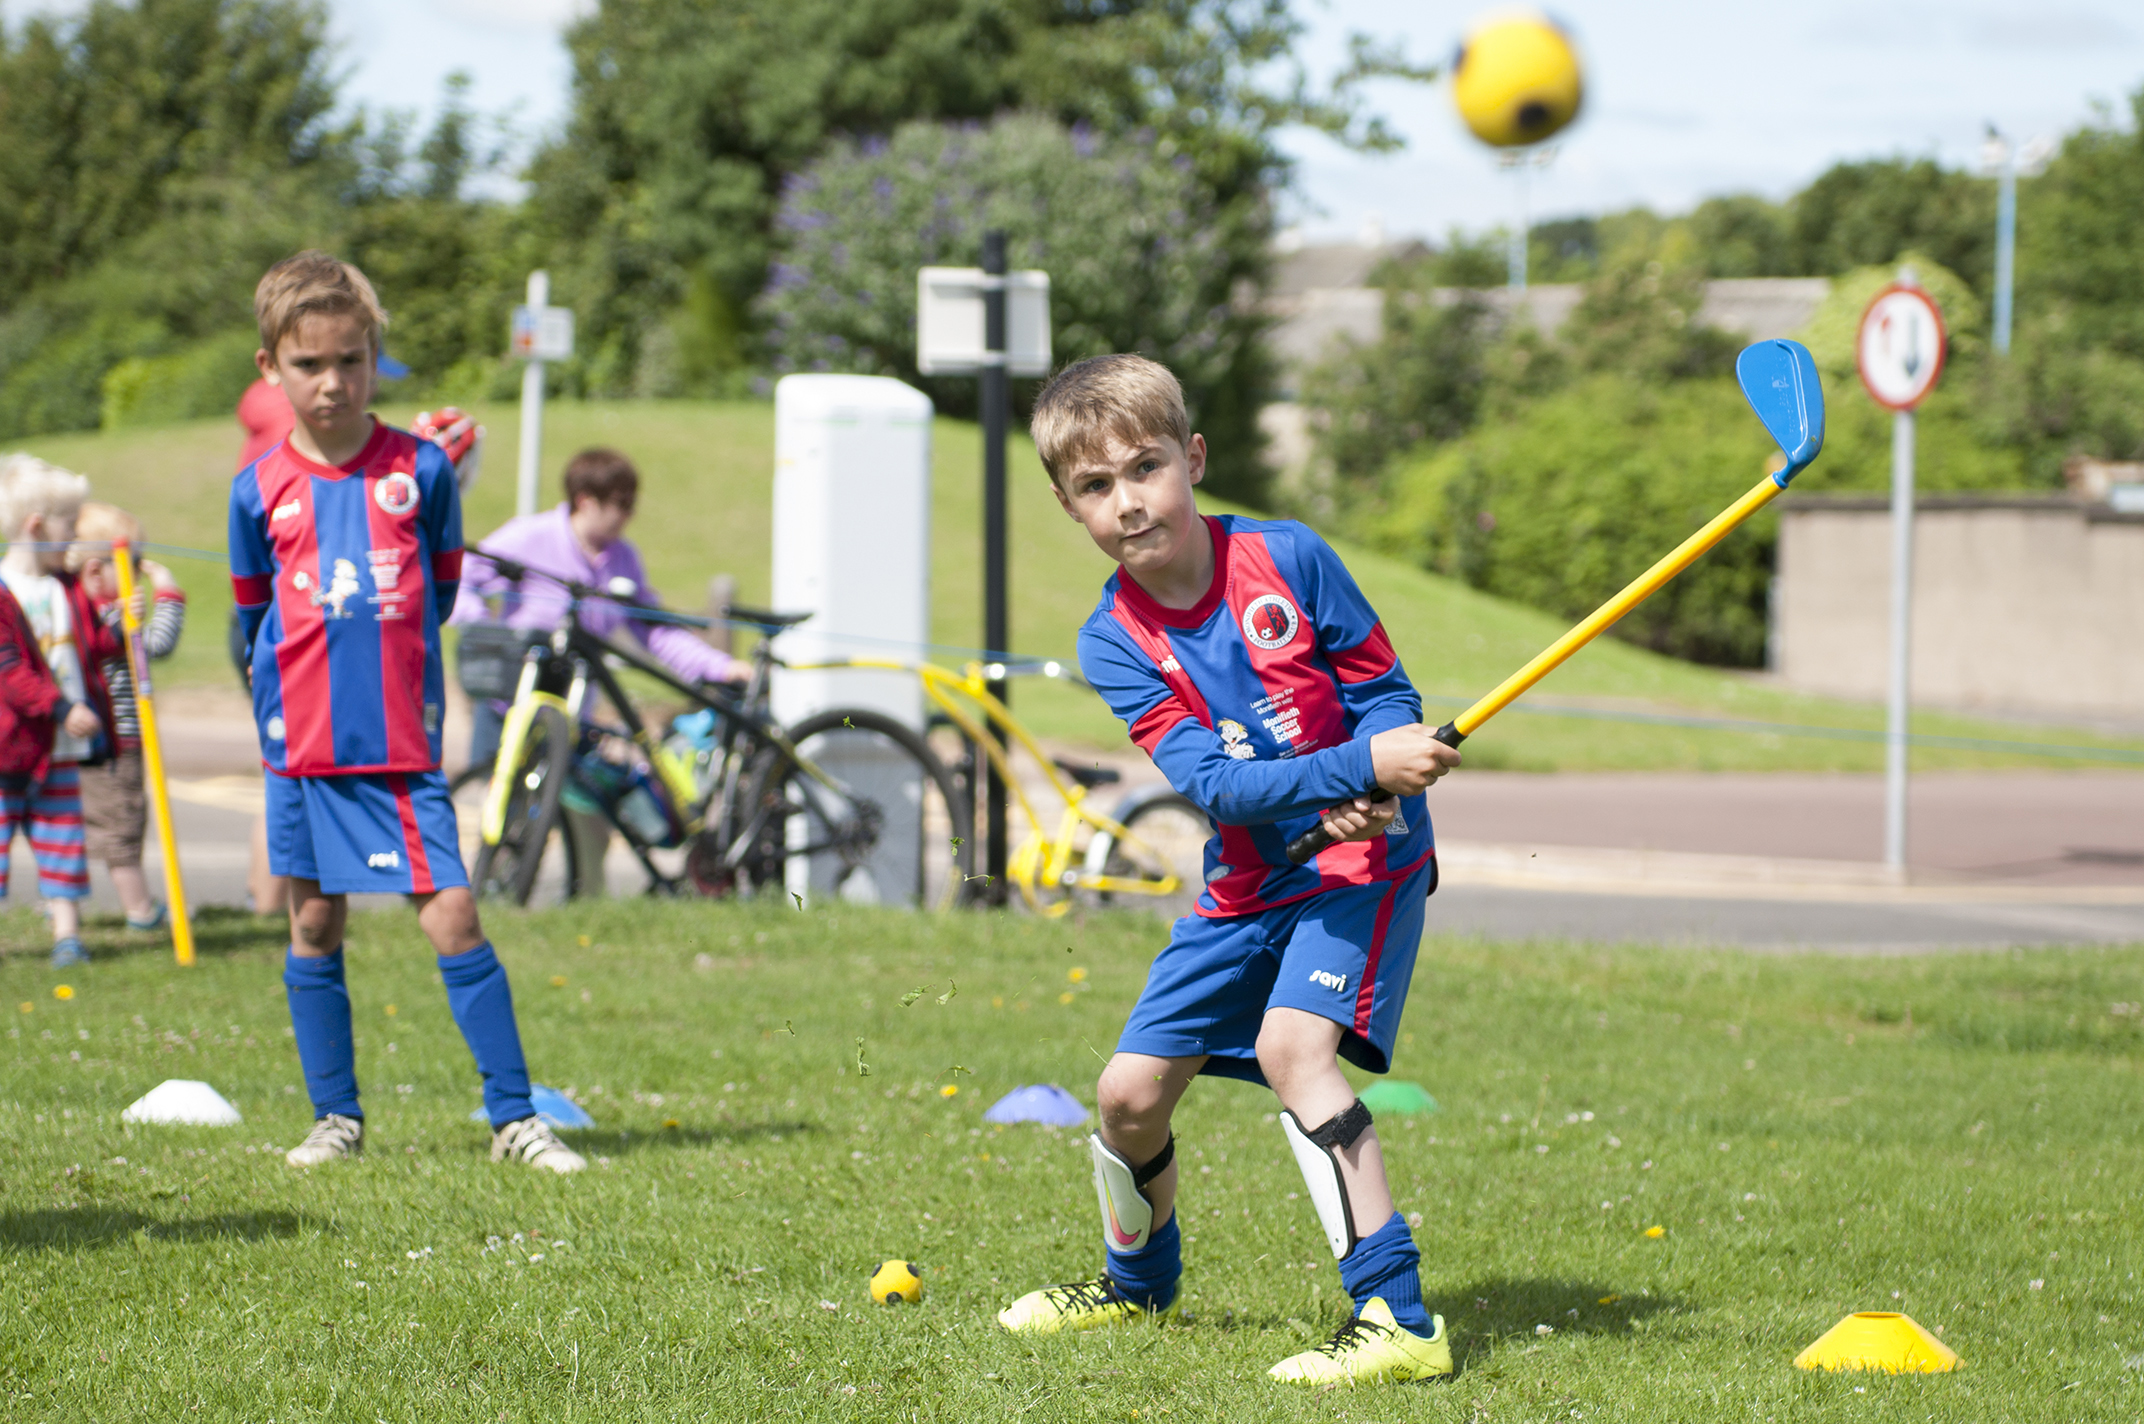 From left, Ethan Flynn and Max Raeside pictured at Saturday's event.